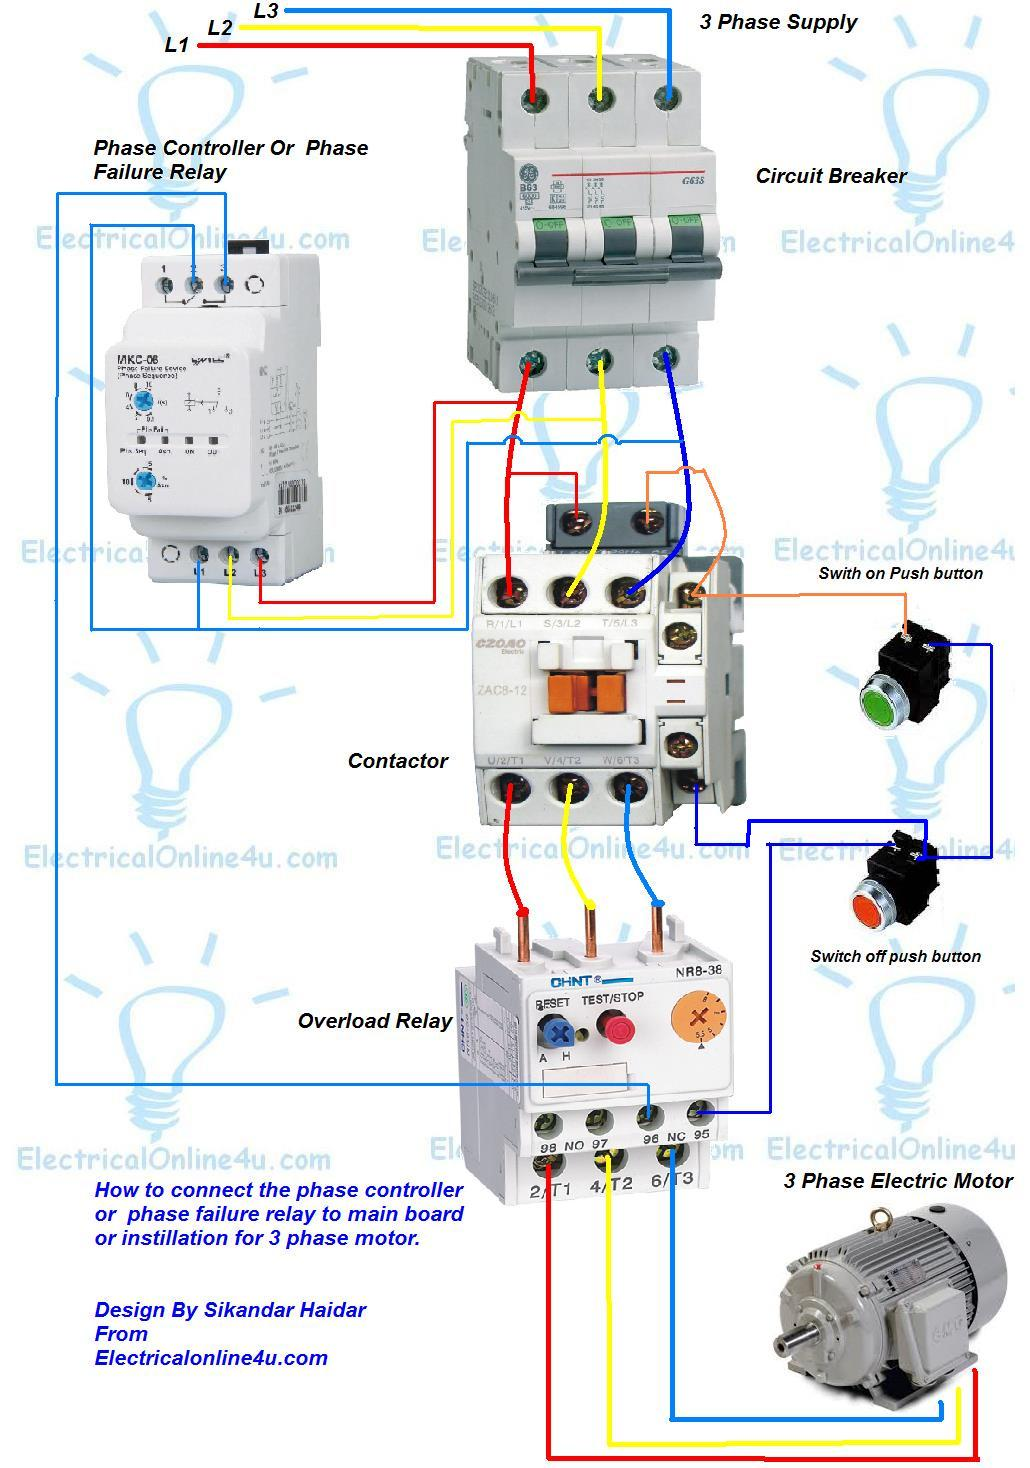 Phase%2Bfailure%2Brelay%2B %2Bphase%2Bcontroller%2Binstilaion%2Bin%2B3%2Bphase%2BMain%2Bboard%2Bor%2Bfor%2B3%2Bphase%2Bmotor phase controller wiring phase failure relay diagram electrical 3 phase electric motor diagrams at bayanpartner.co